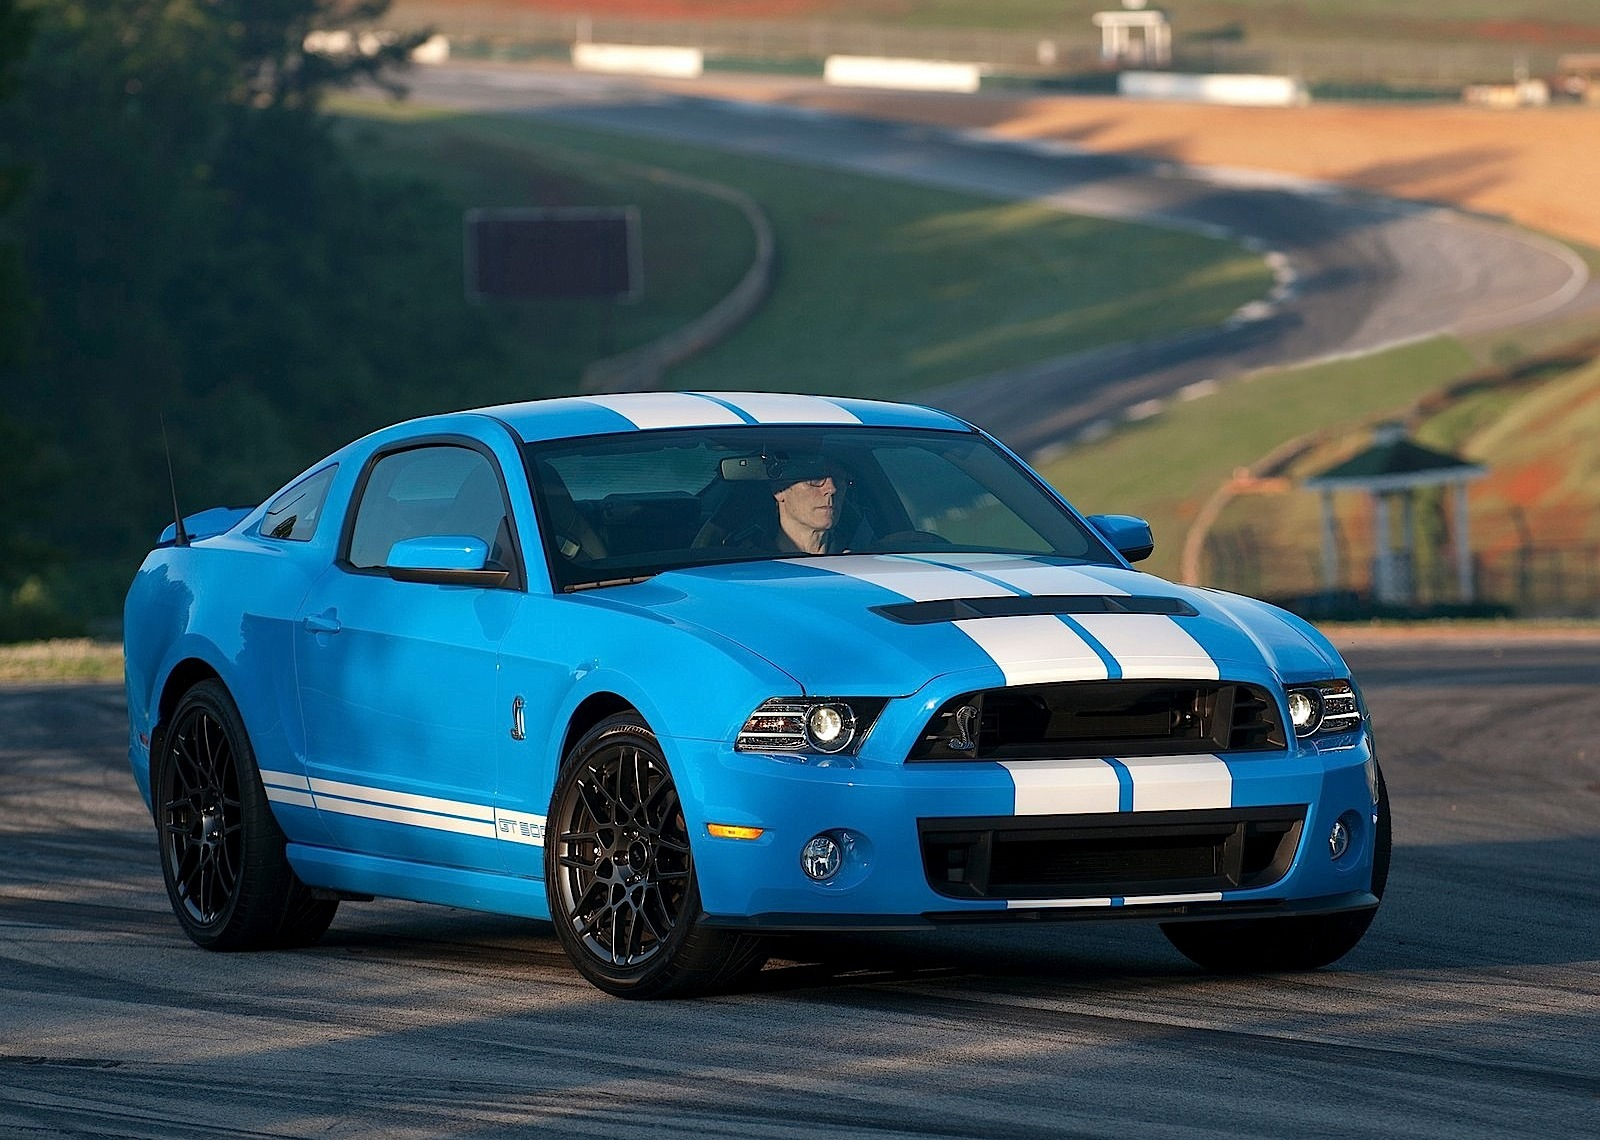 Gt500 Mustang 2015 >> Ford Mustang Shelby Gt500 Specs Photos 2012 2013 2014 2015